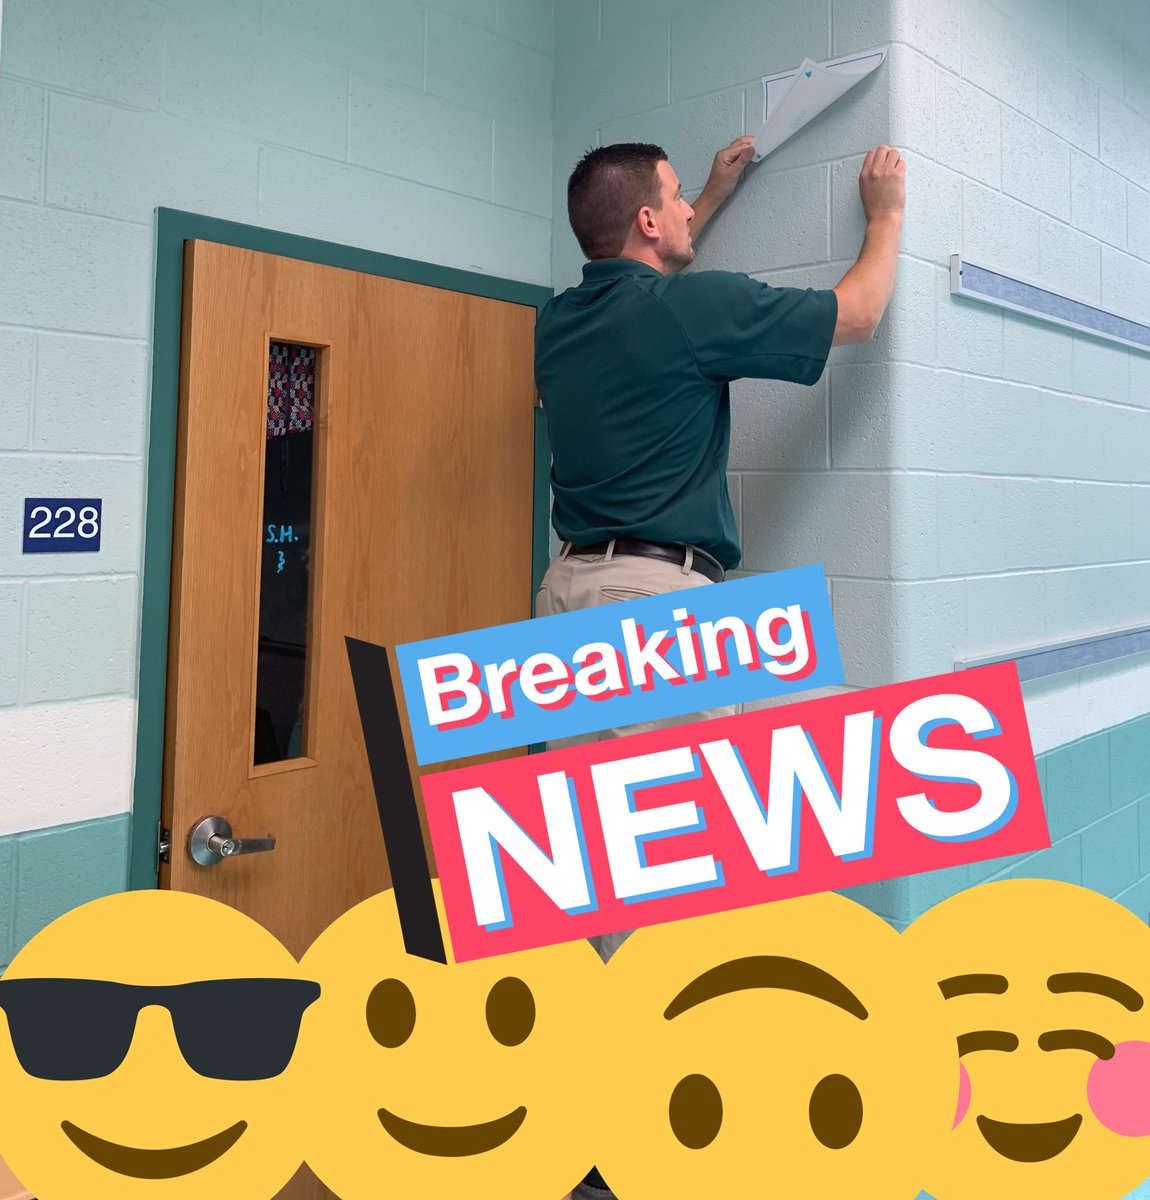 We are all diligently working to get @SMS_CT ready for our amazing students! @DrChrisLongo was busy labeling classrooms today... @BNanassy @SalemSasha #SMSpride #NMPSrocks #SURGE